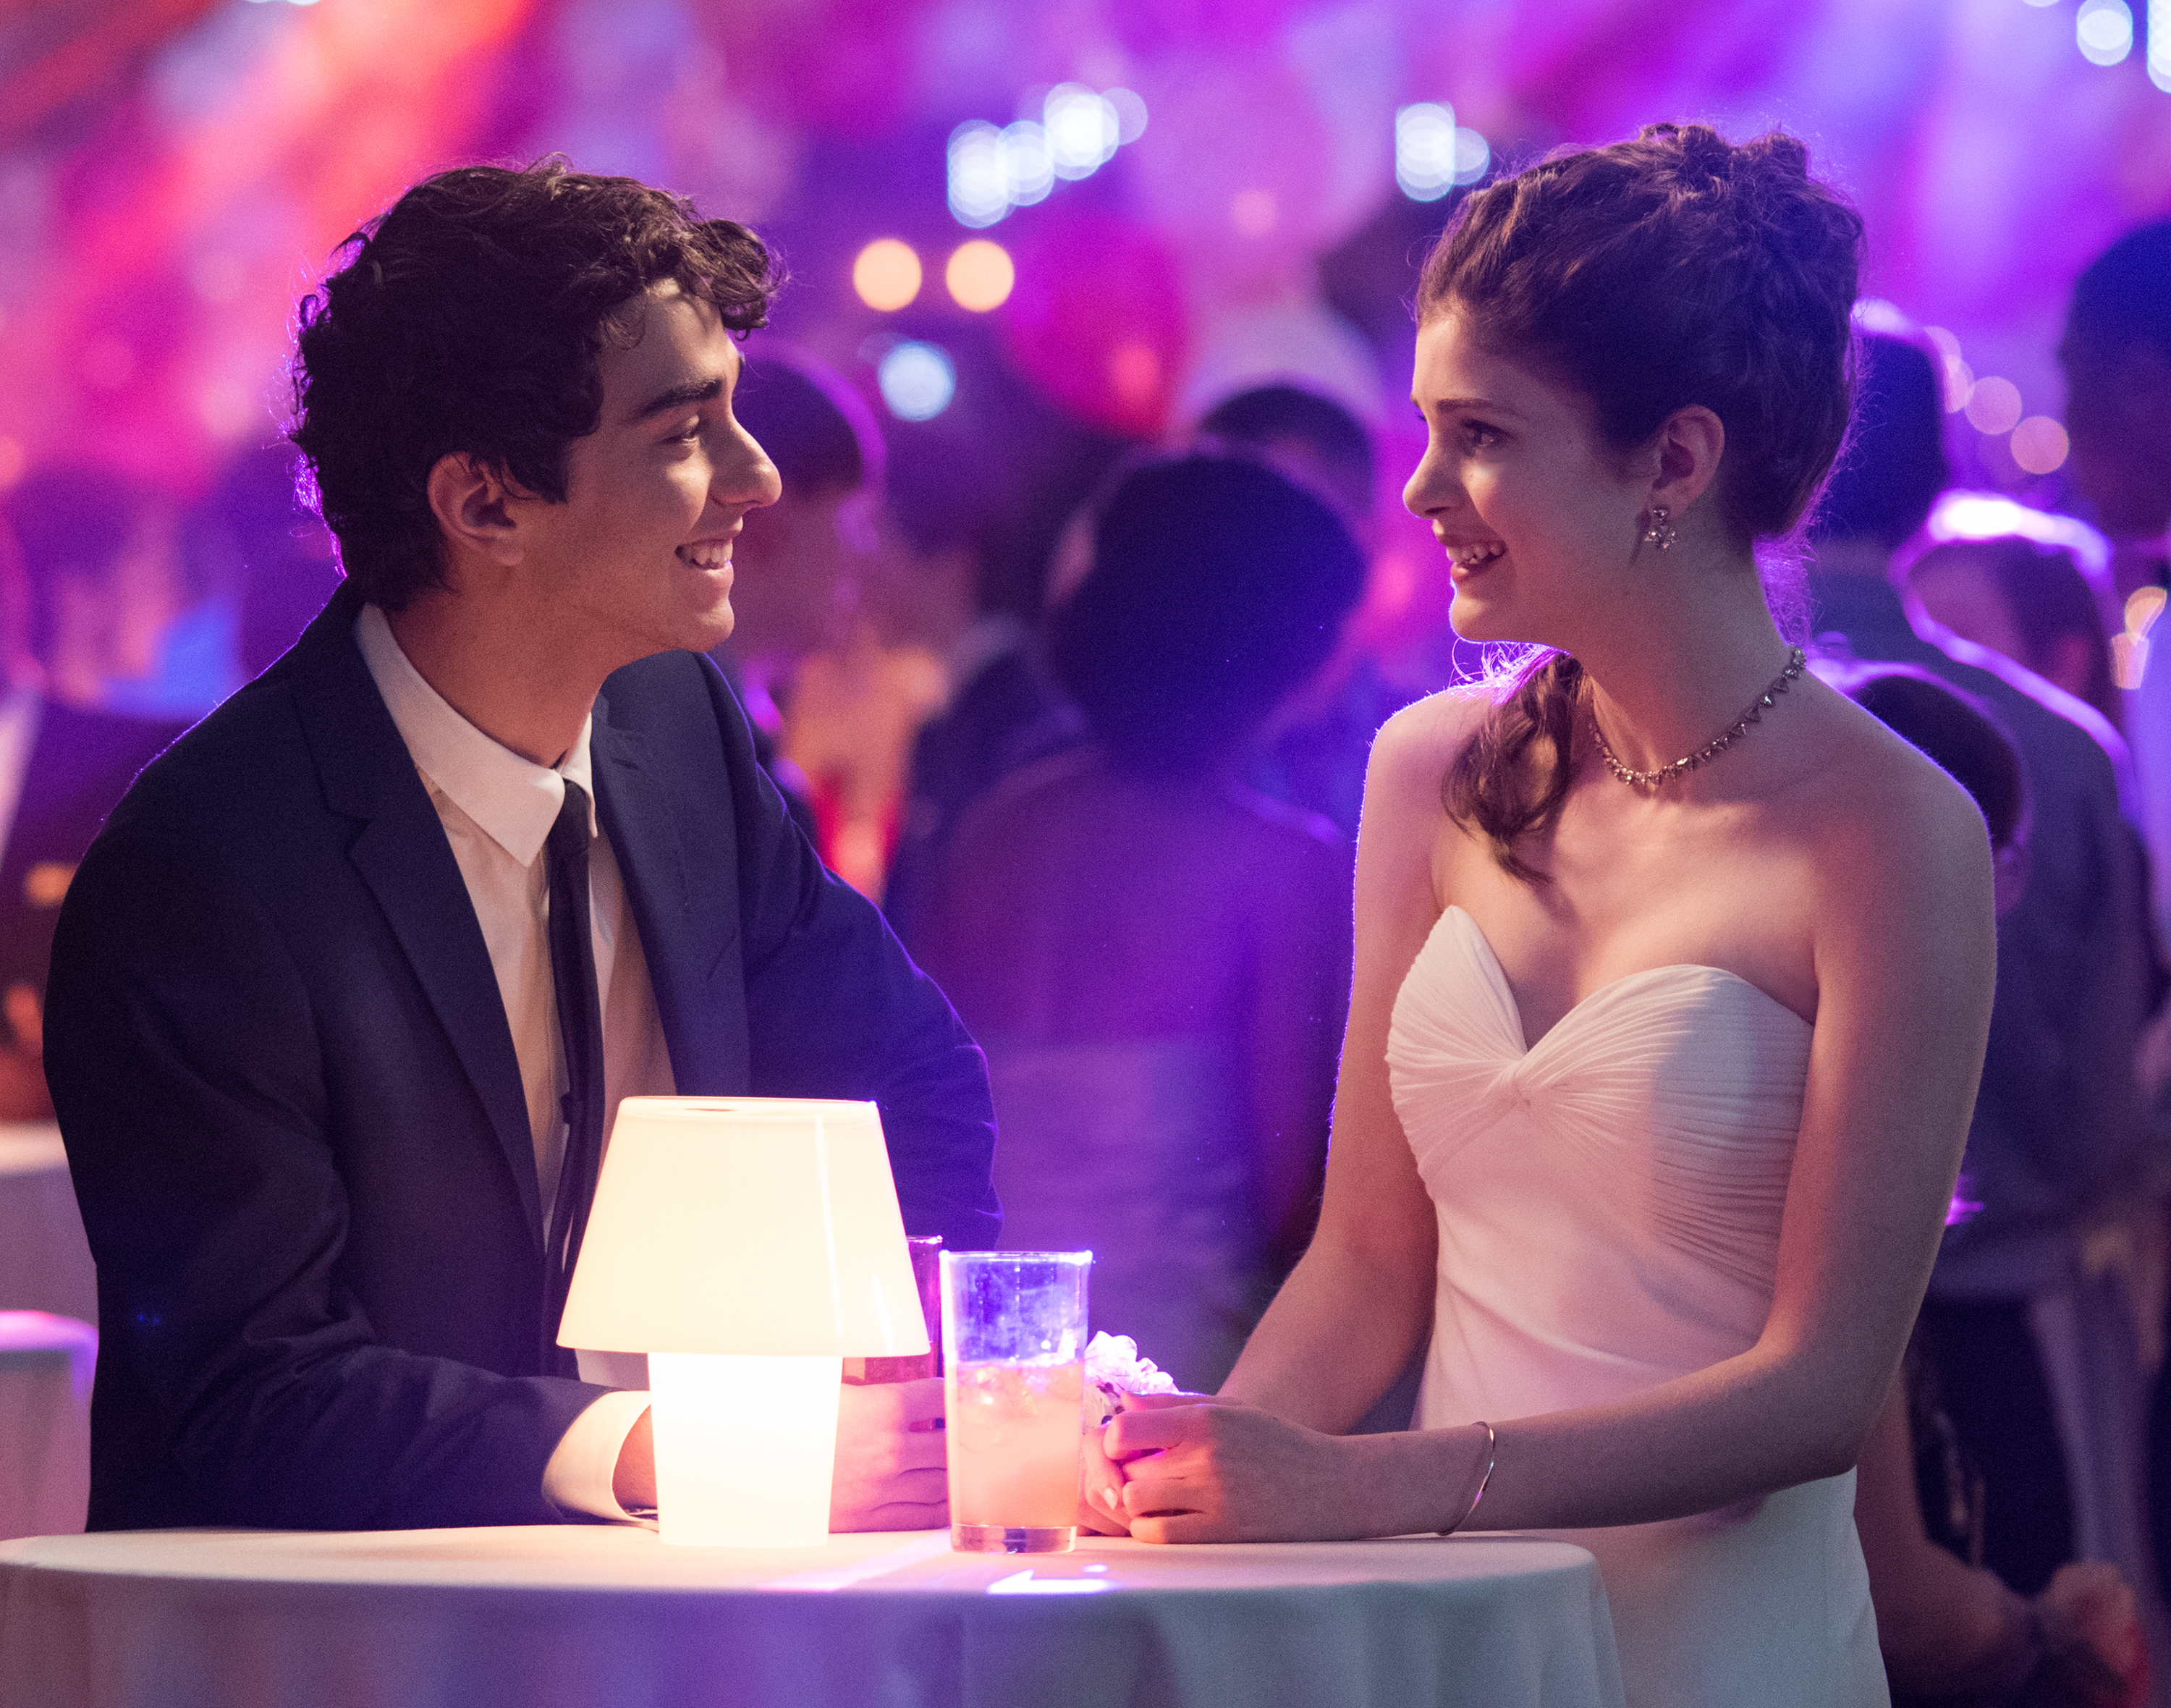 Alex Wolff, left, and Elena Kampouris, right, in a scene from My Big Fat Greek Wedding 2.